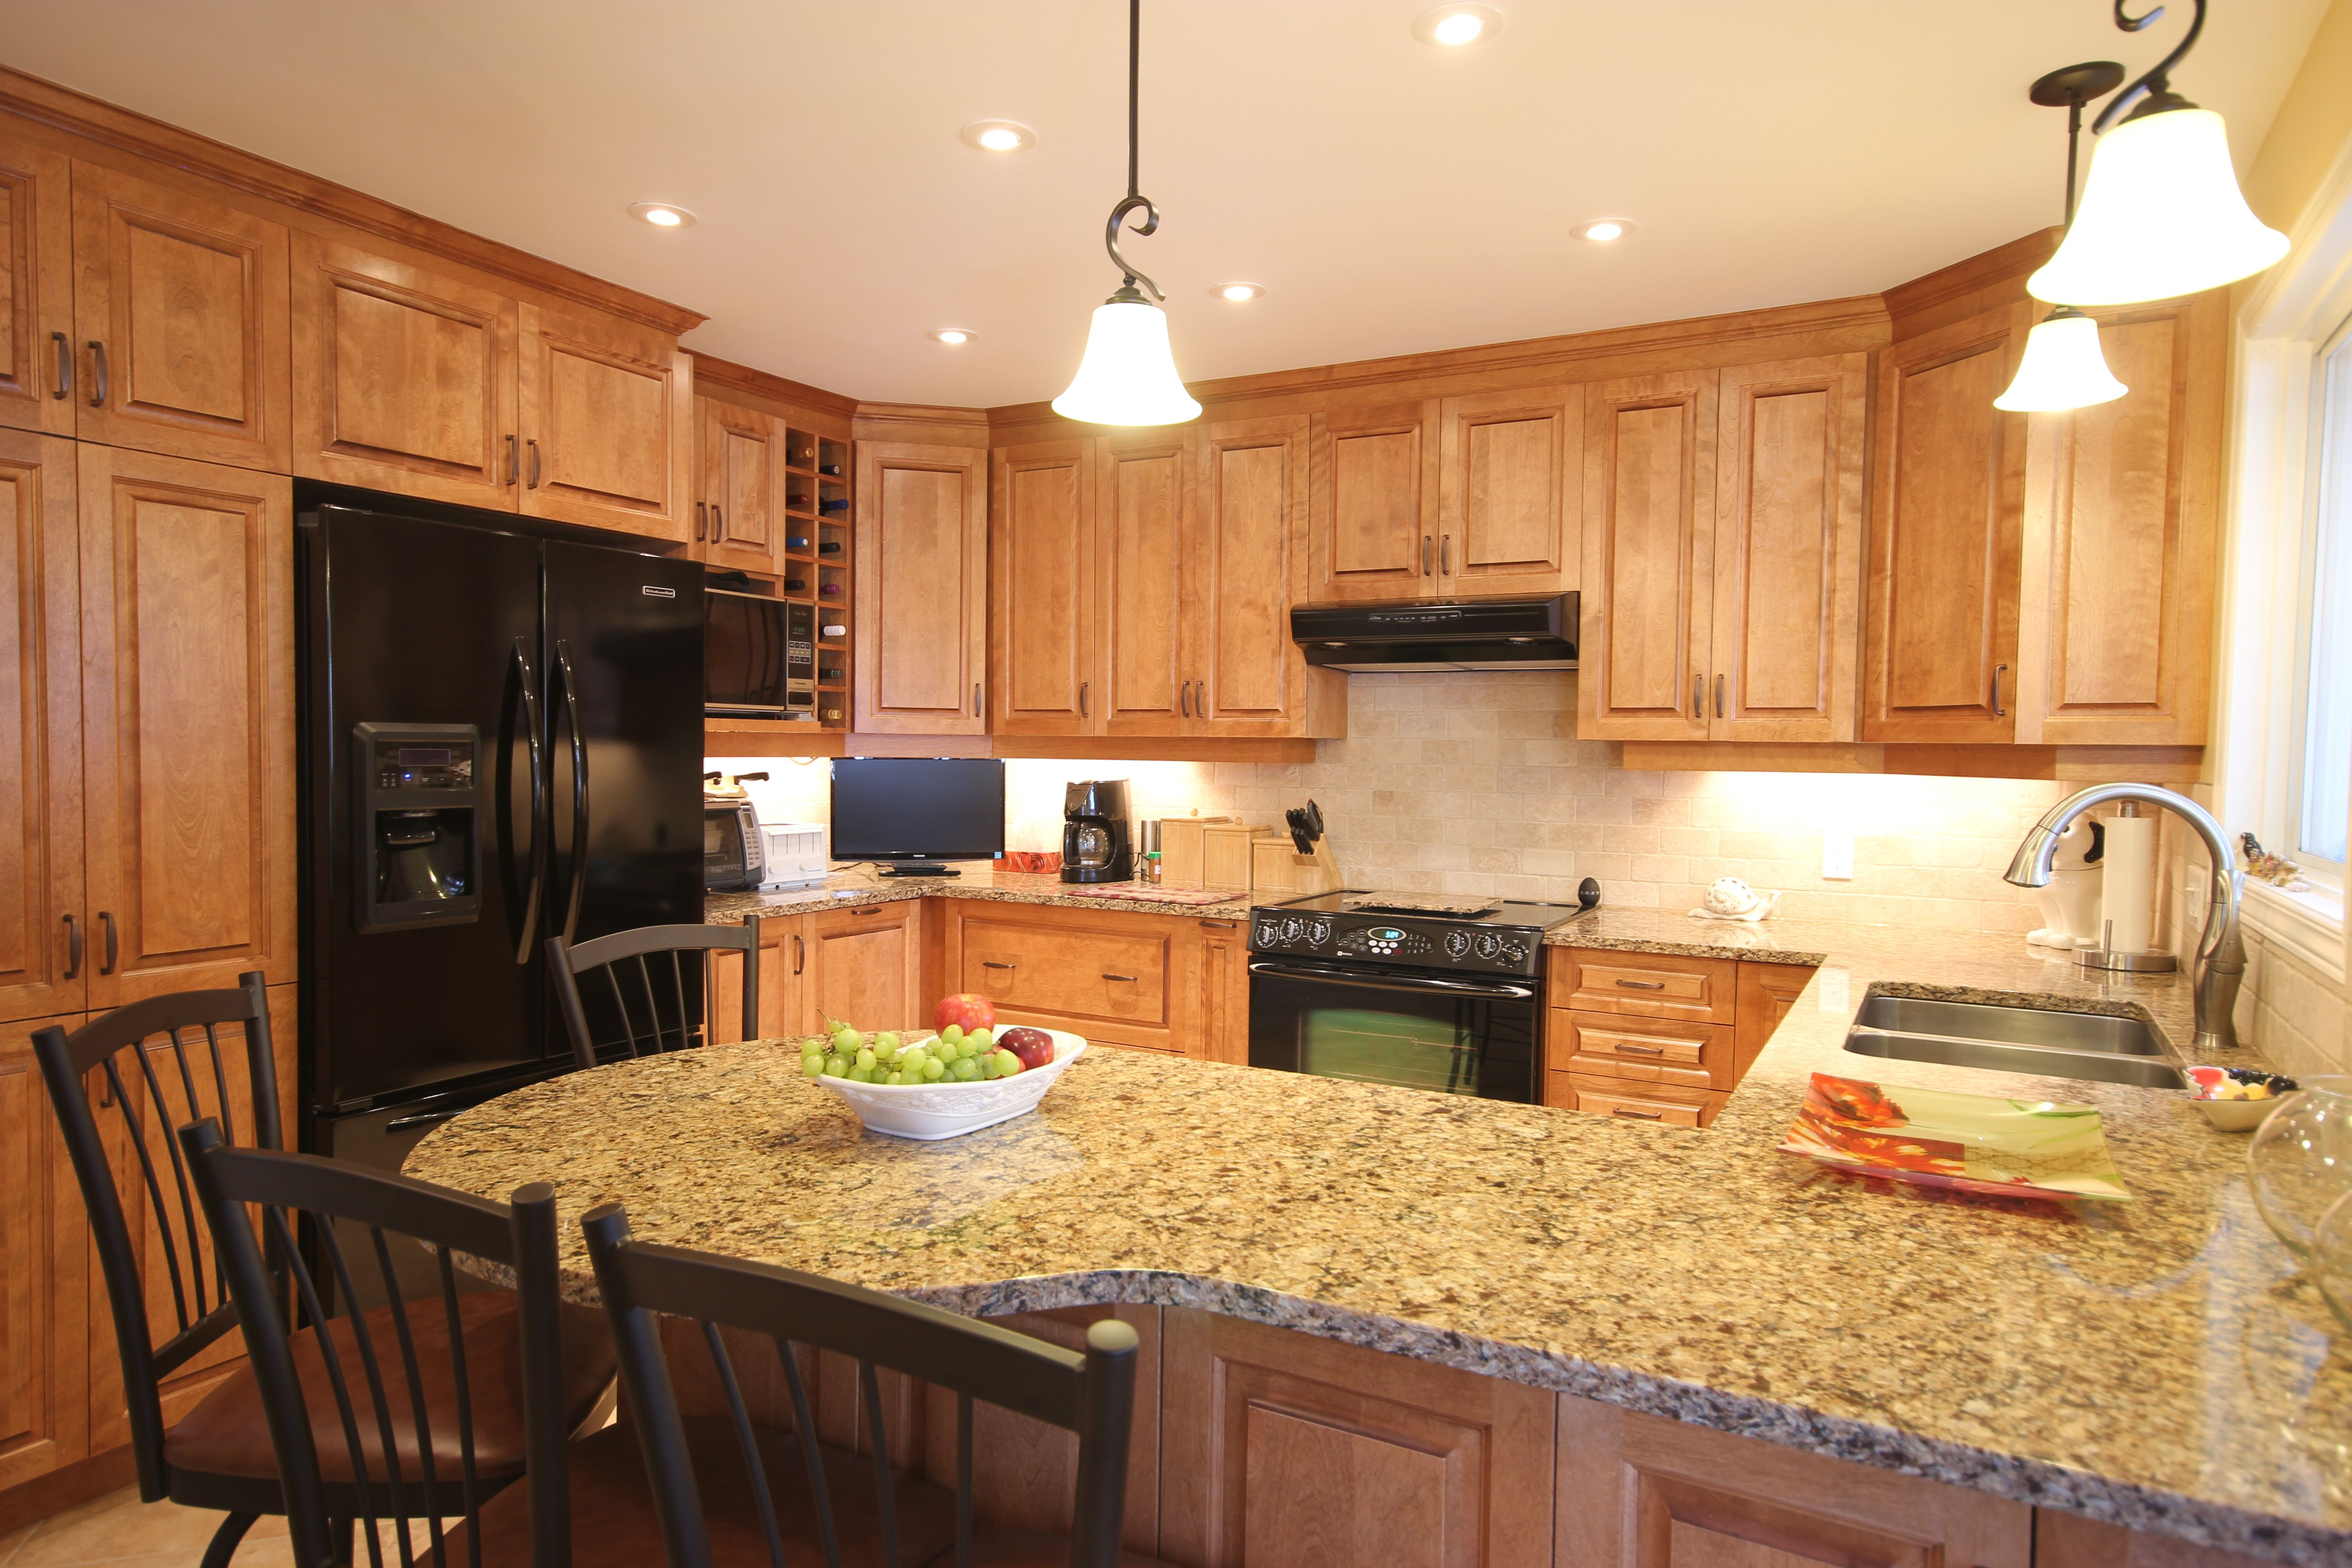 Oakwood Offers Many Different Cabinetry Options And Pricing Kitchen Cabinetry Kitchen Cupboard Designs Kitchen Cabinets Pictures Wood Kitchen Cabinets